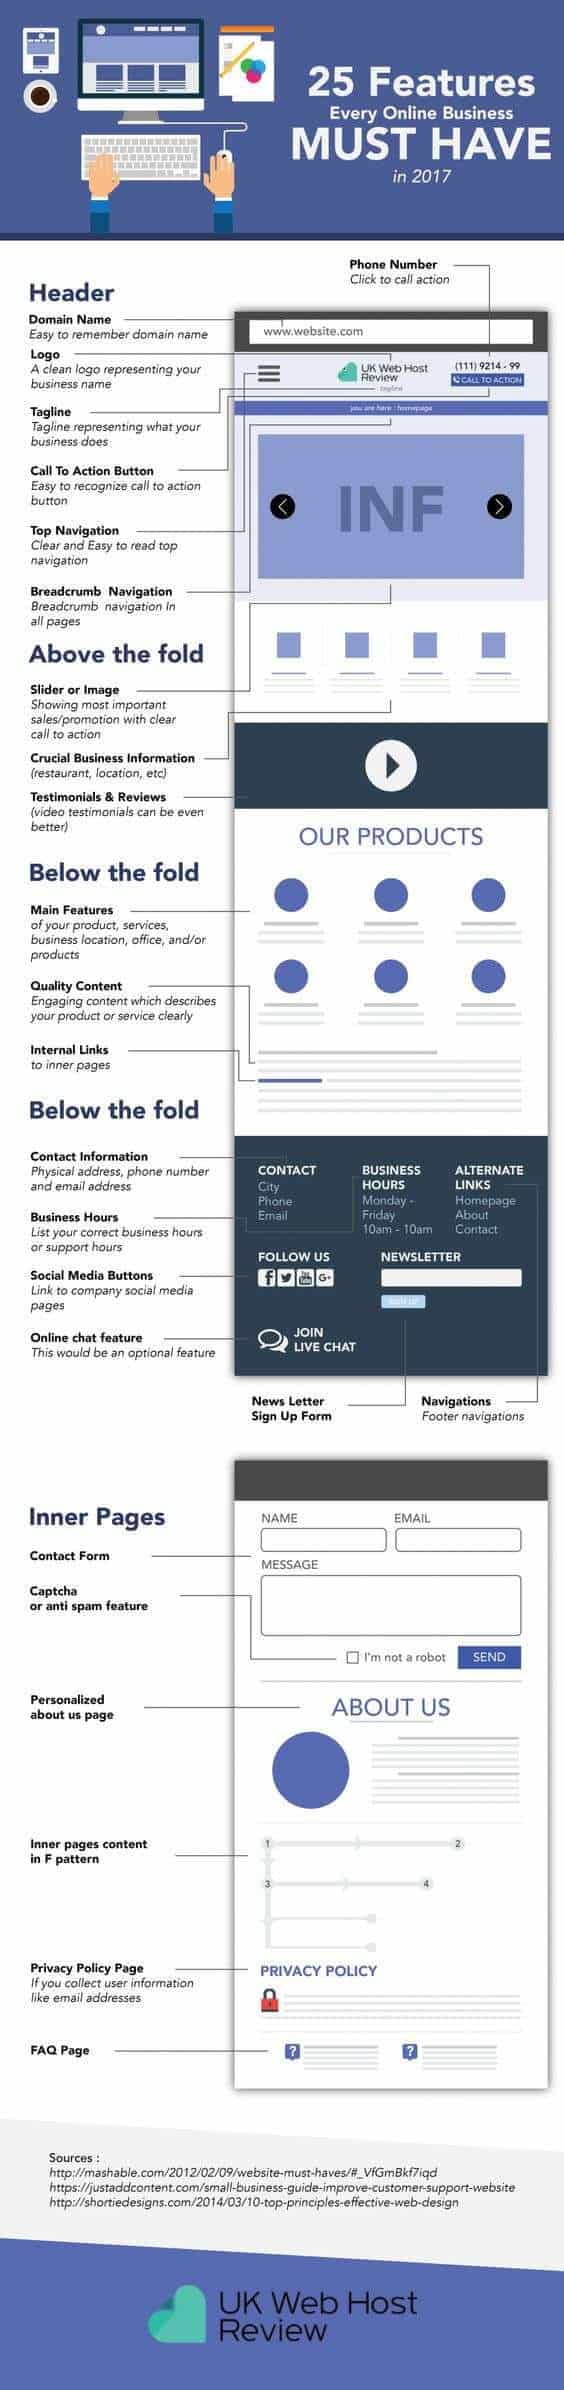 SEO Features Infographic